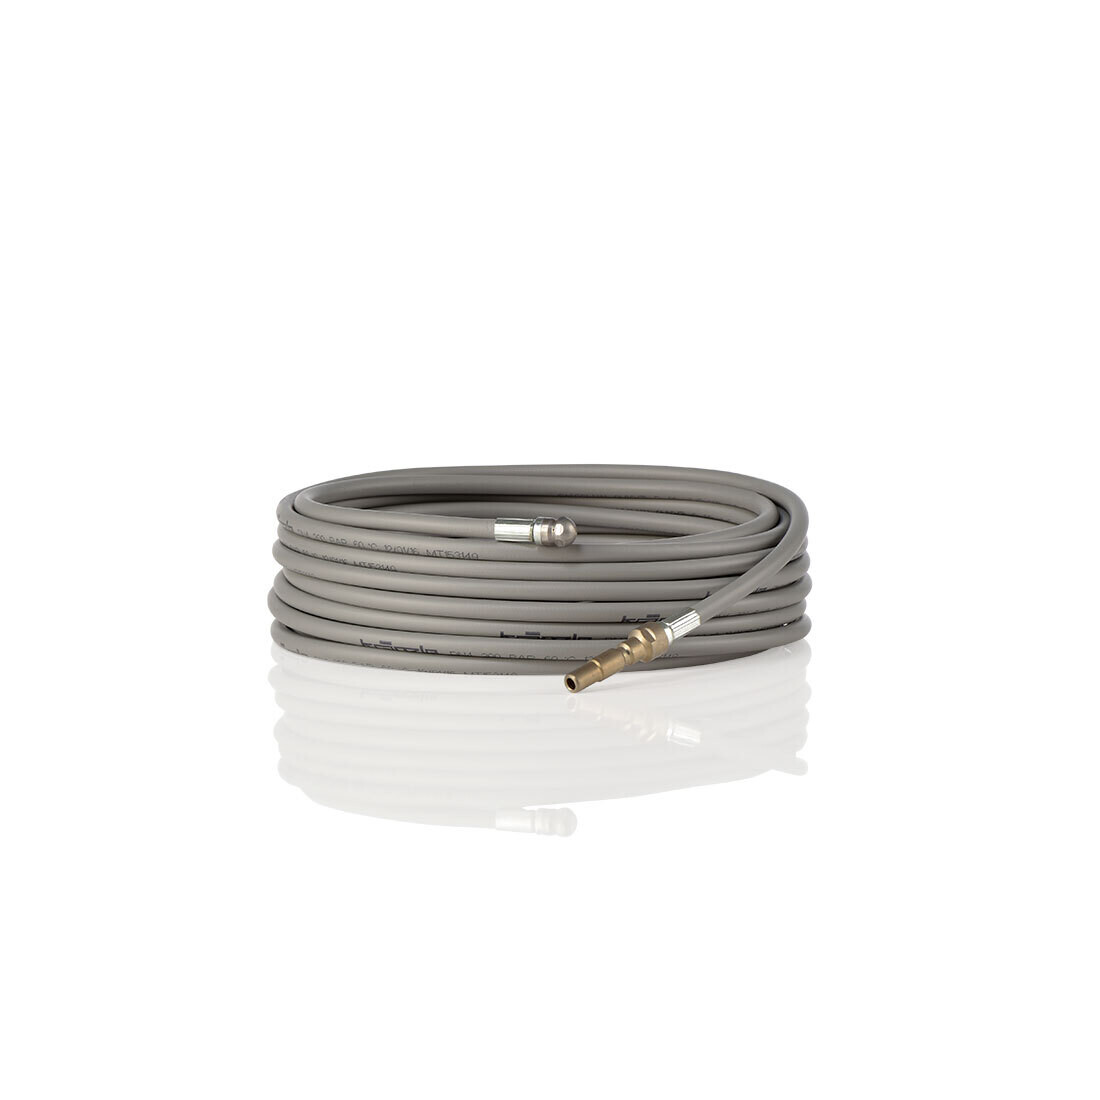 Kranzle Pipe-Drain Cleaning Hose